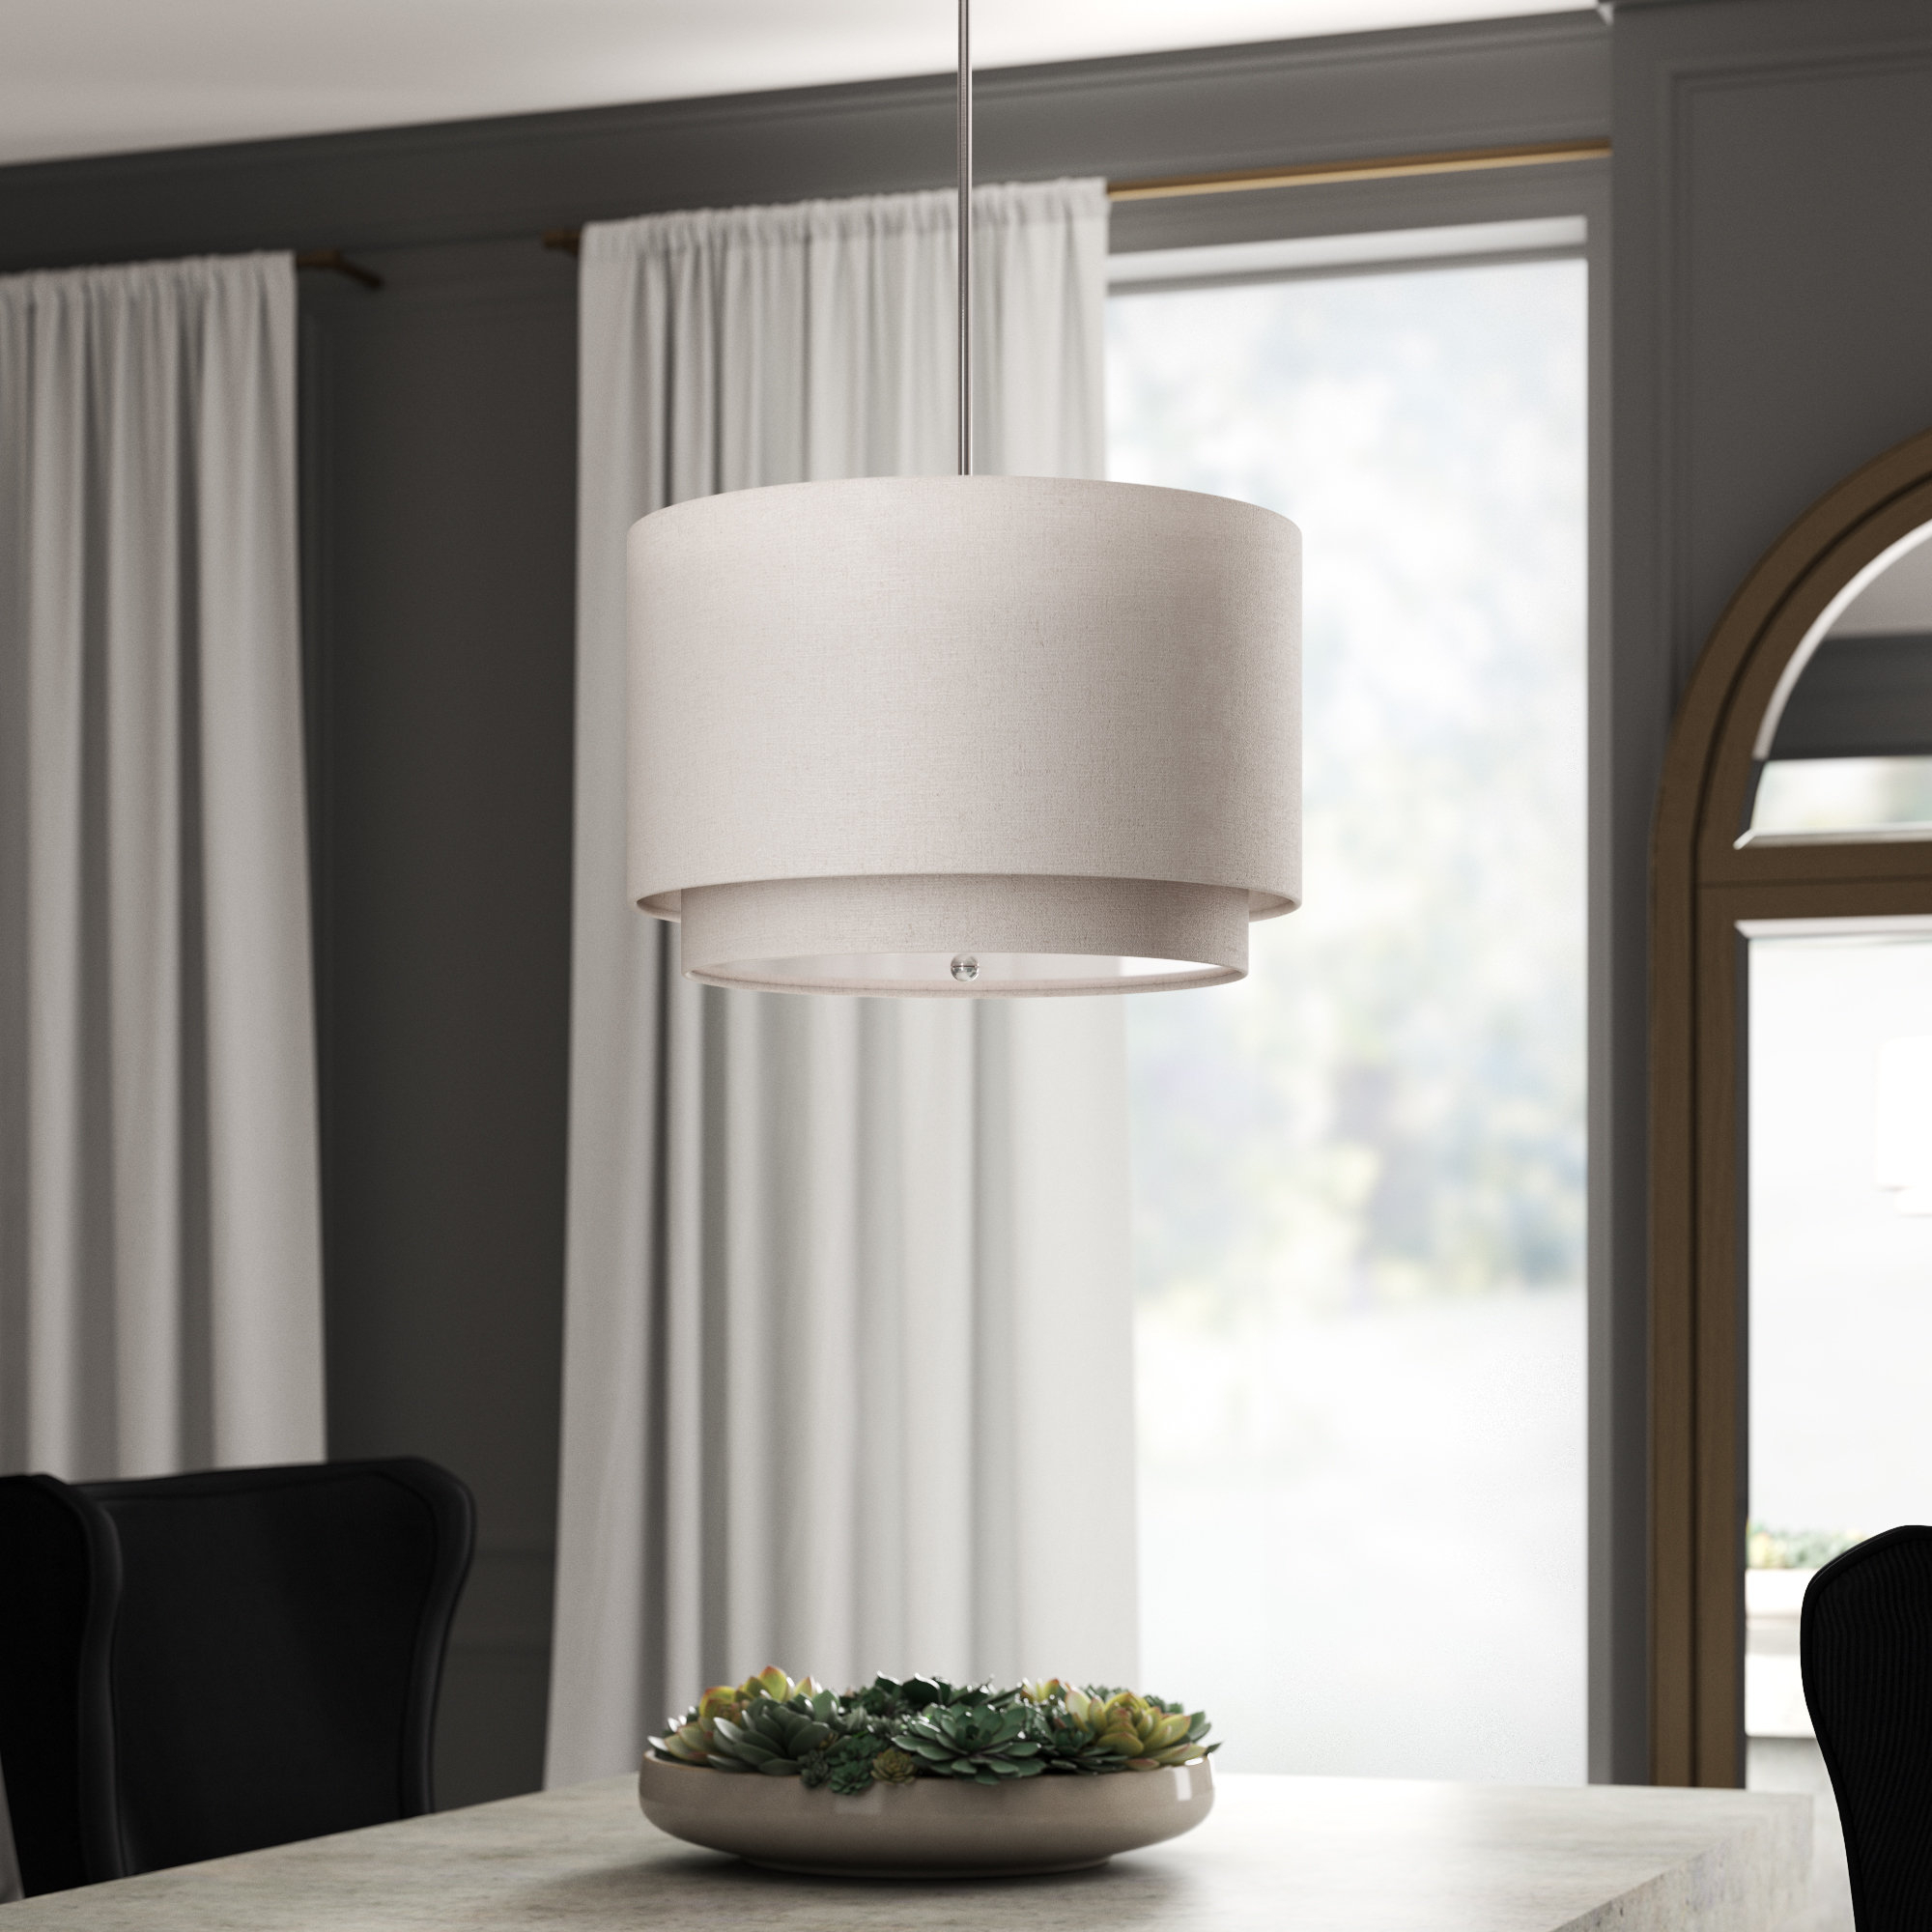 Best And Newest Friedland 3 Light Drum Tiered Pendant With Friedland 3 Light Drum Tiered Pendants (View 2 of 25)